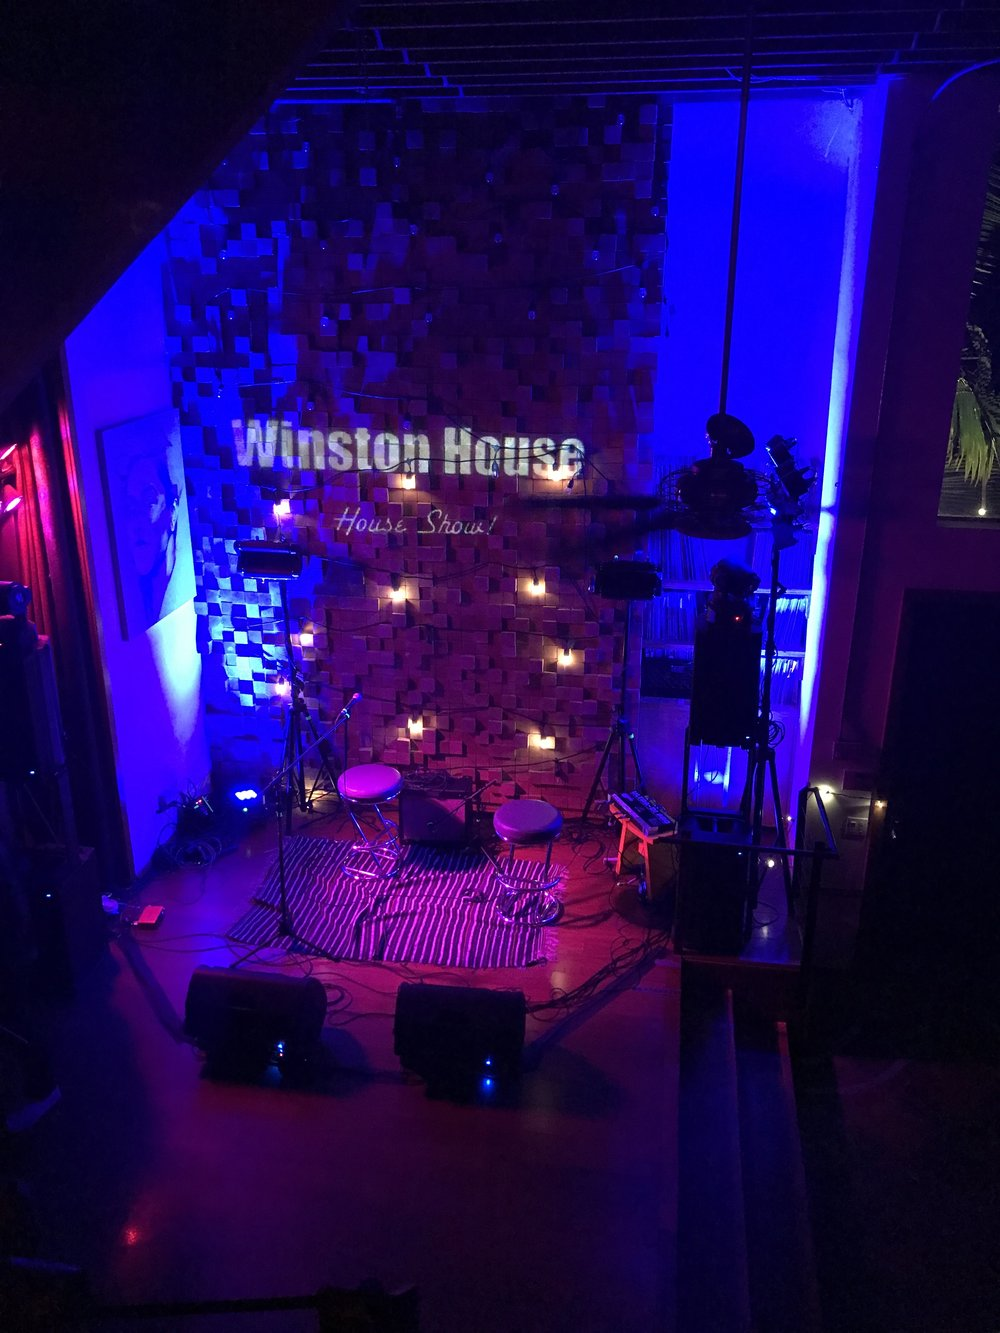 One of the amazing opportunities made possible by Ashley was entrance into the Winston House. And amazing community of Singers and songwriters. I hope to perform there someday very soon!